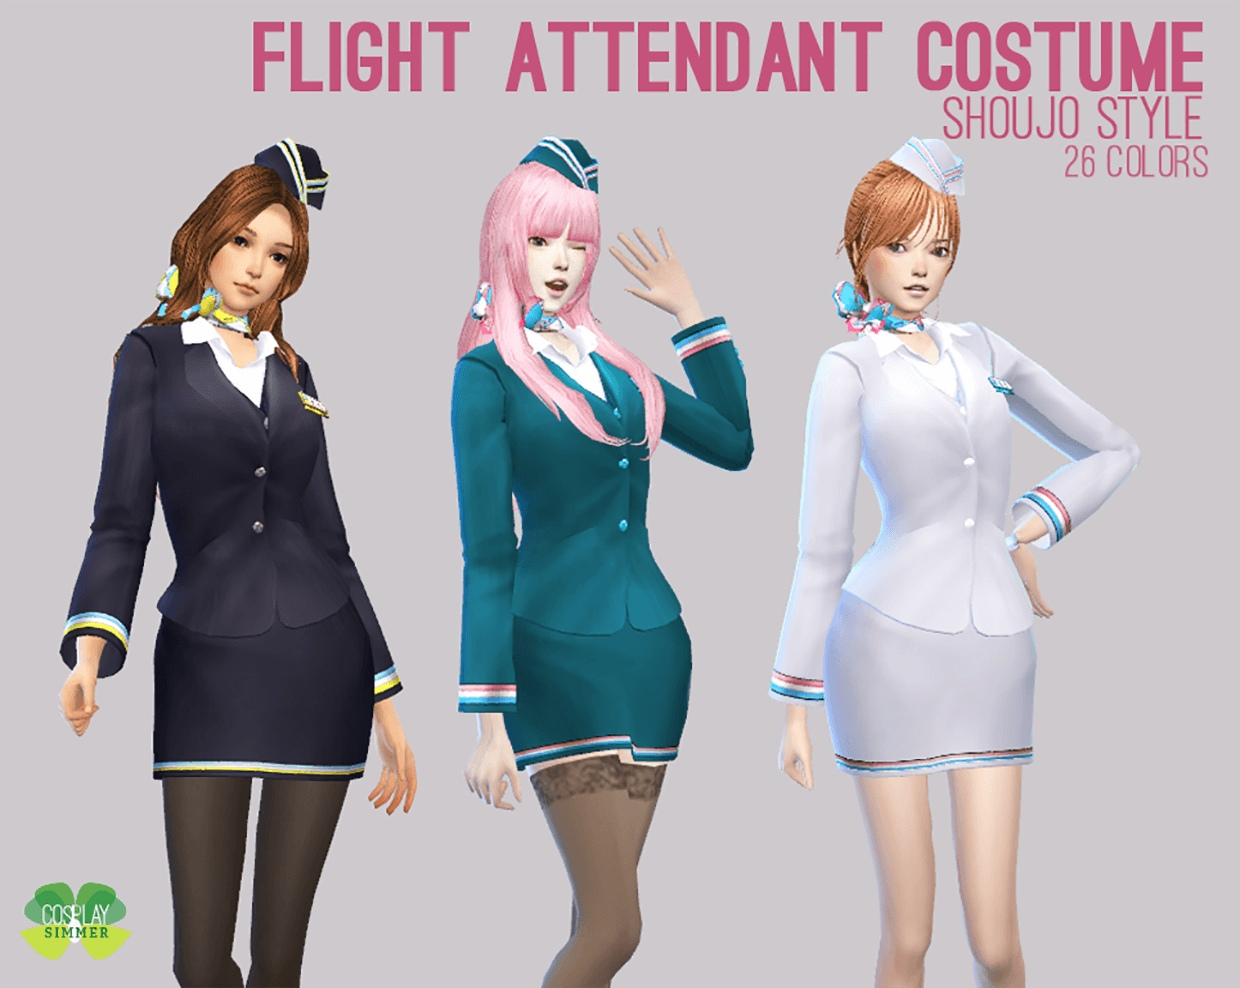 Flight Attendant Costume by Cosplay Simmer